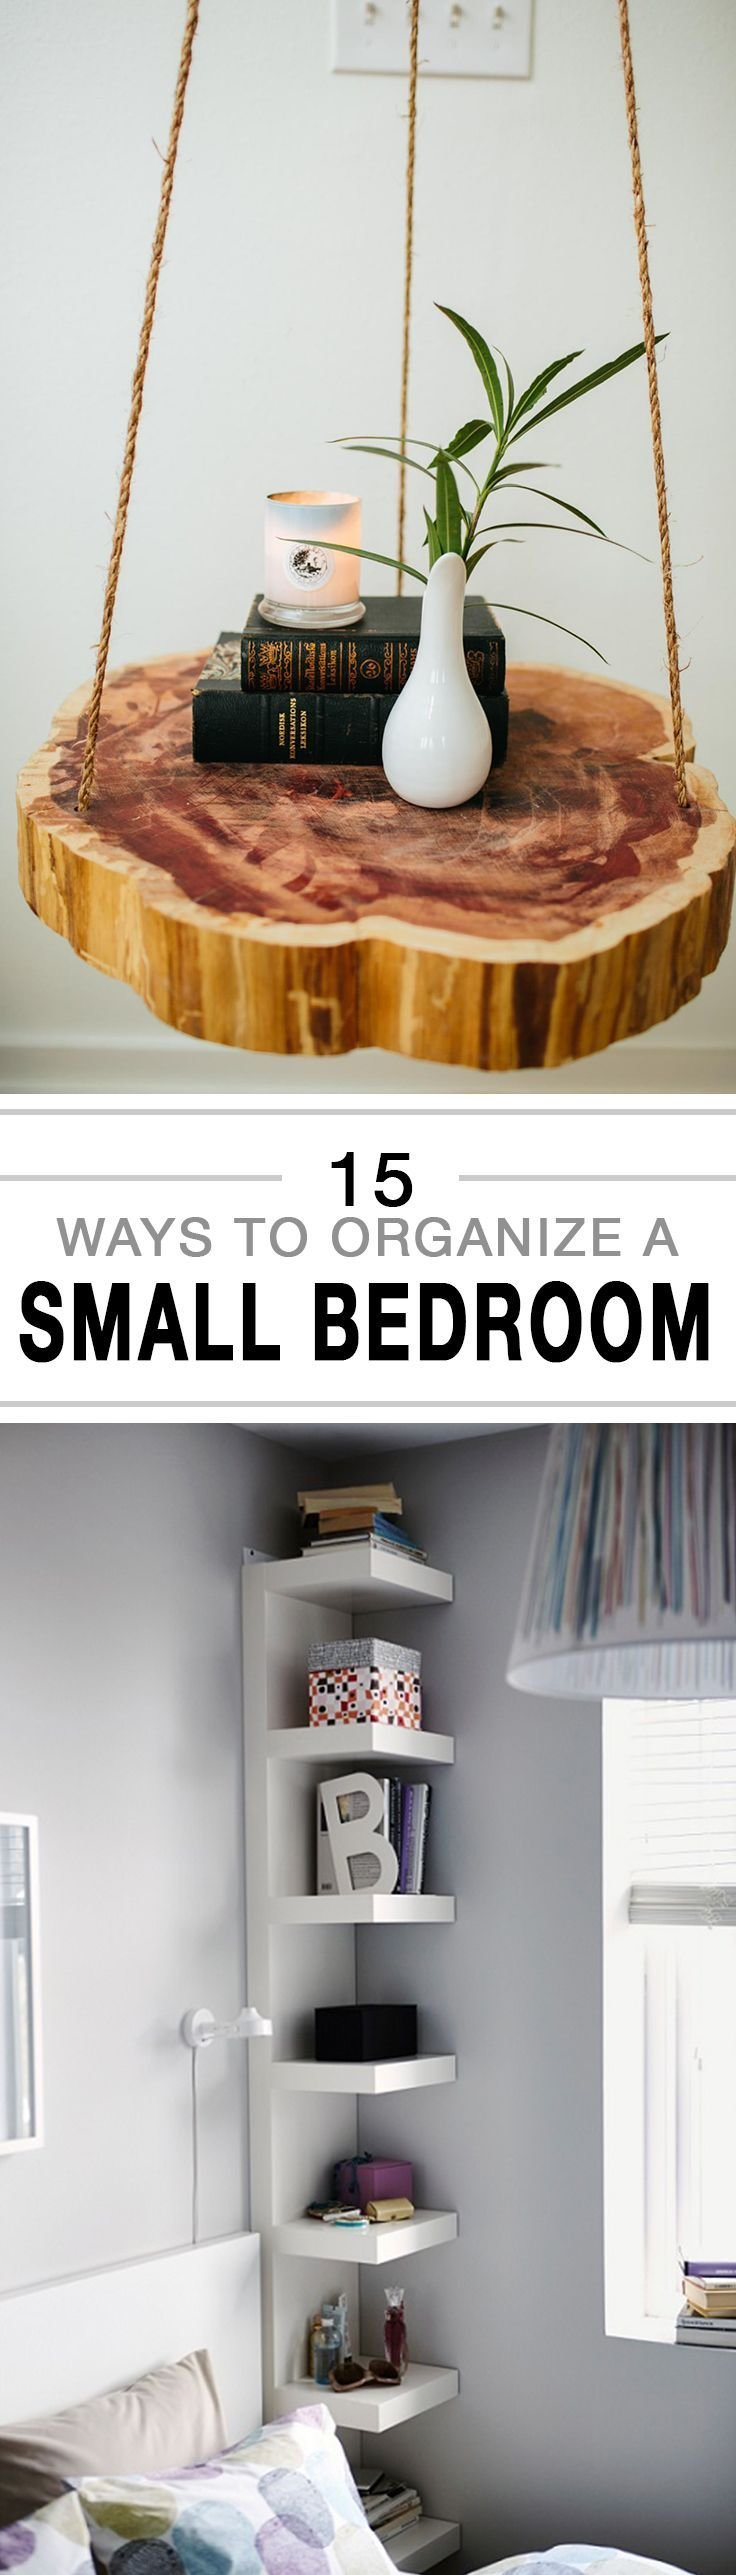 Best 15 Ways To Organize A Small Bedroom Organizing Bedrooms With Pictures